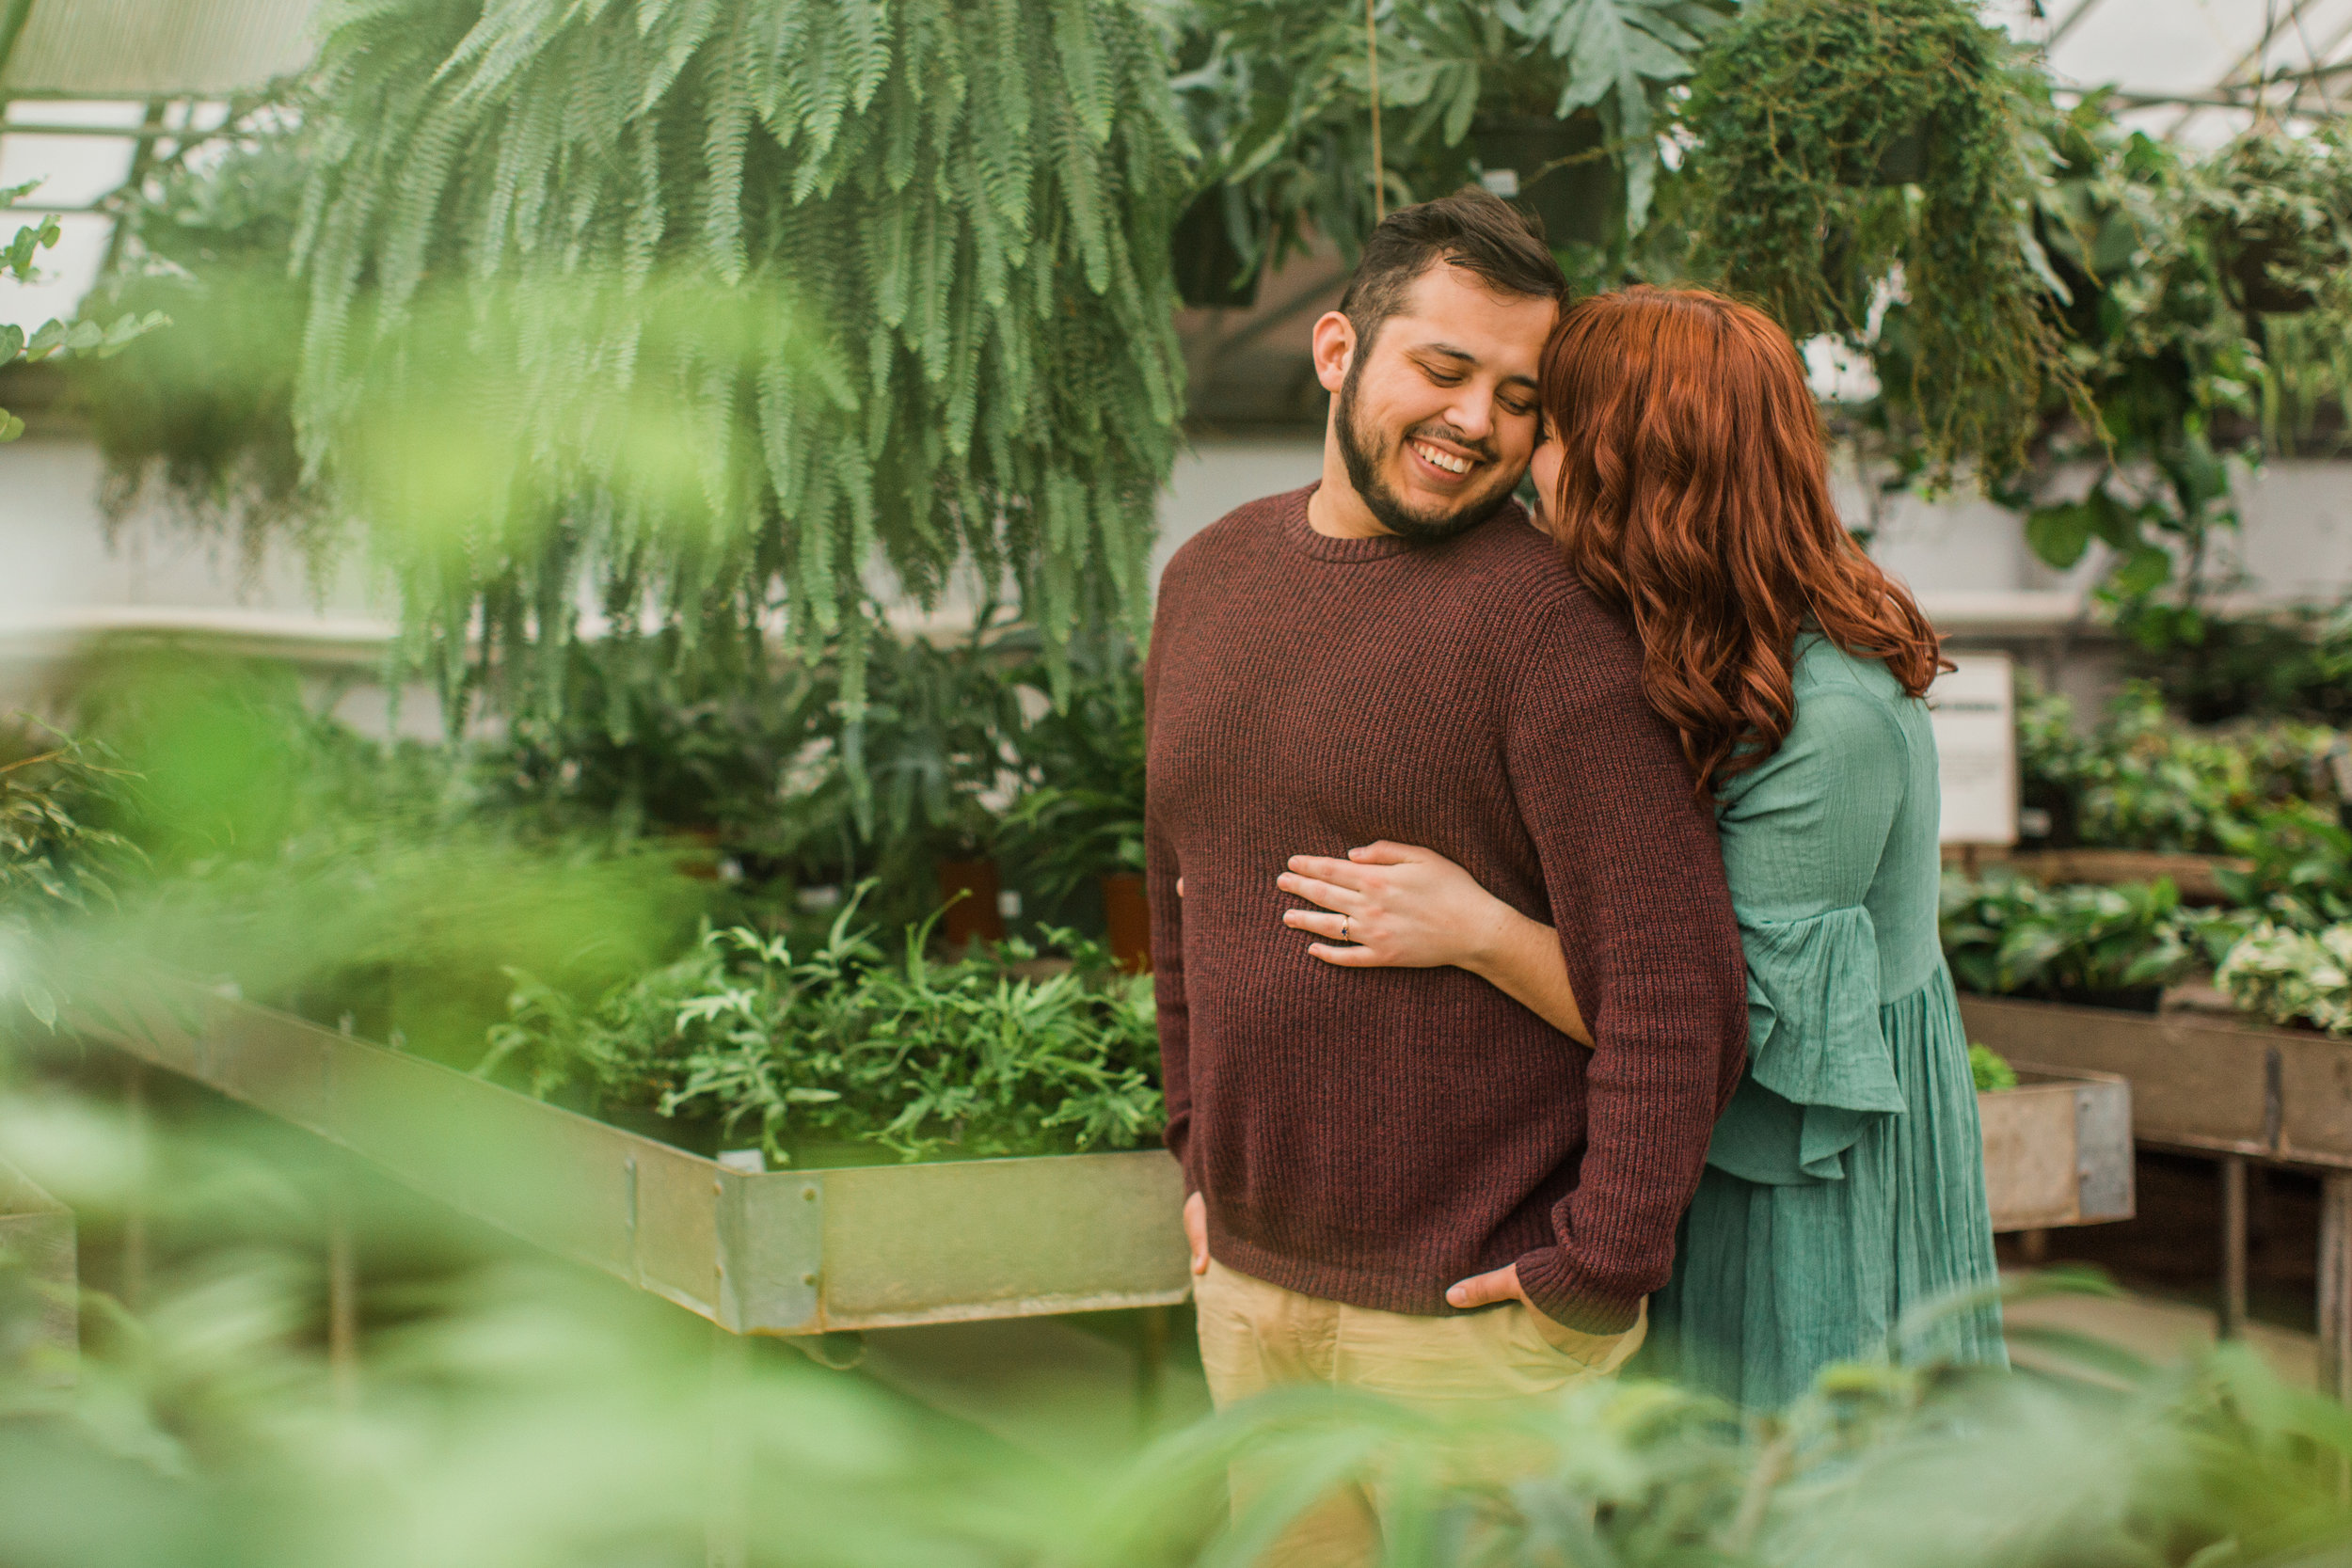 cute engaged couple hugging in greenhouse des moines iowa engagement pictures